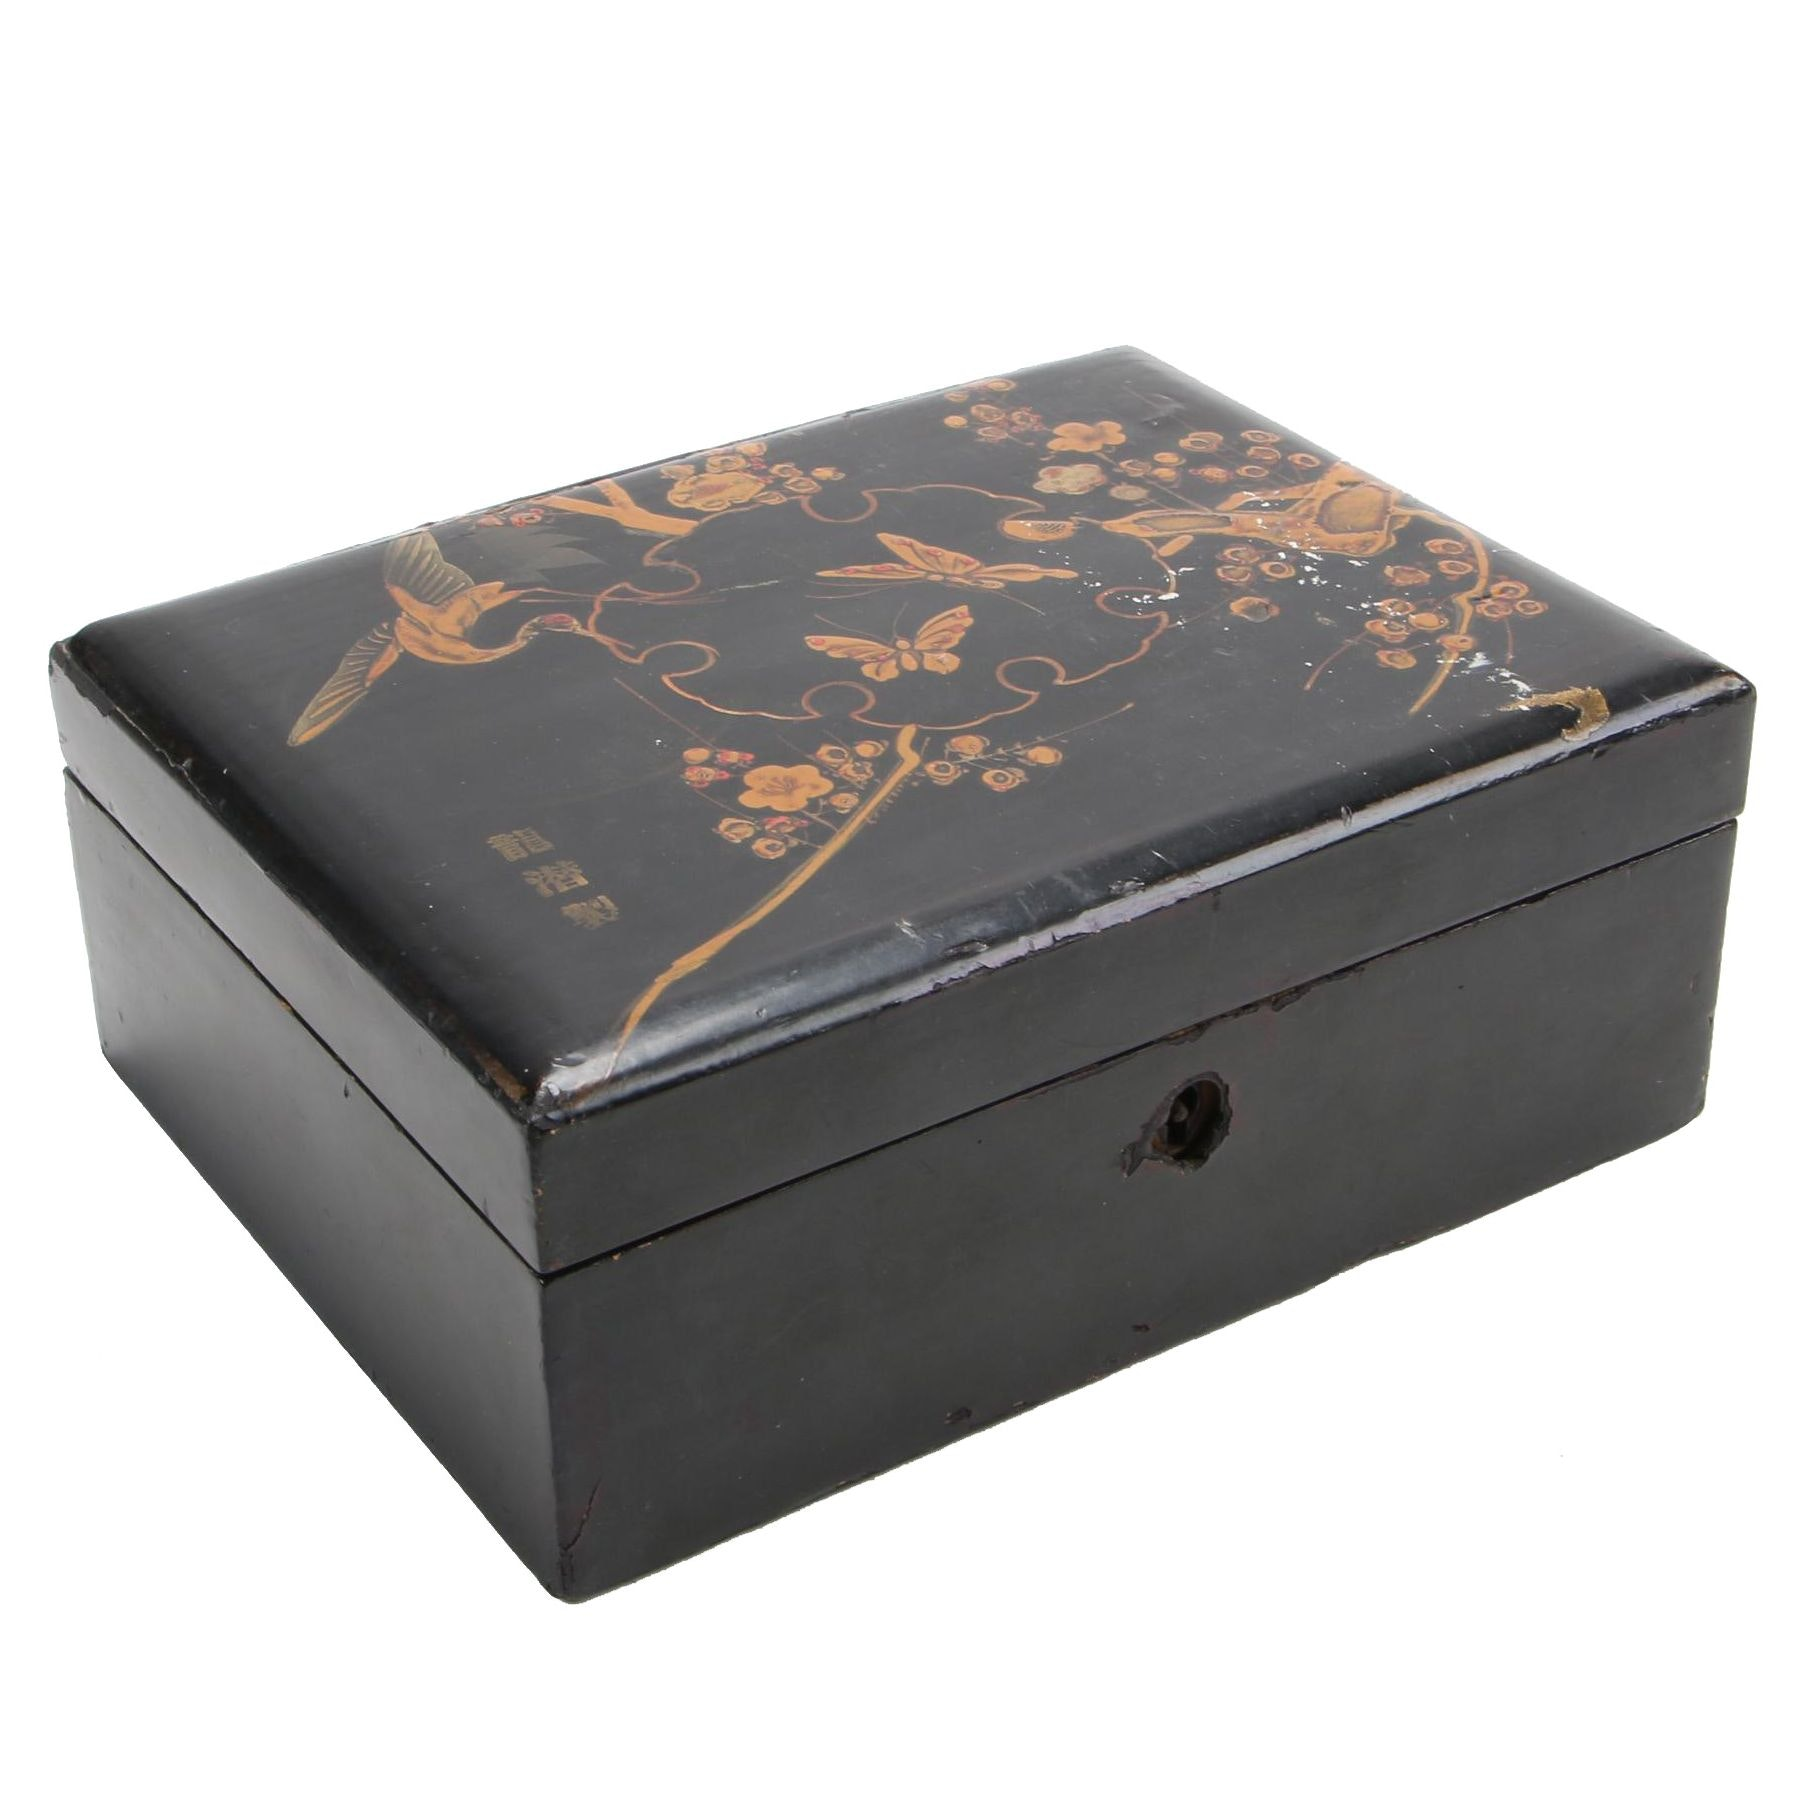 Japanese Lacquered Wood Jewelry Box, 20th Century